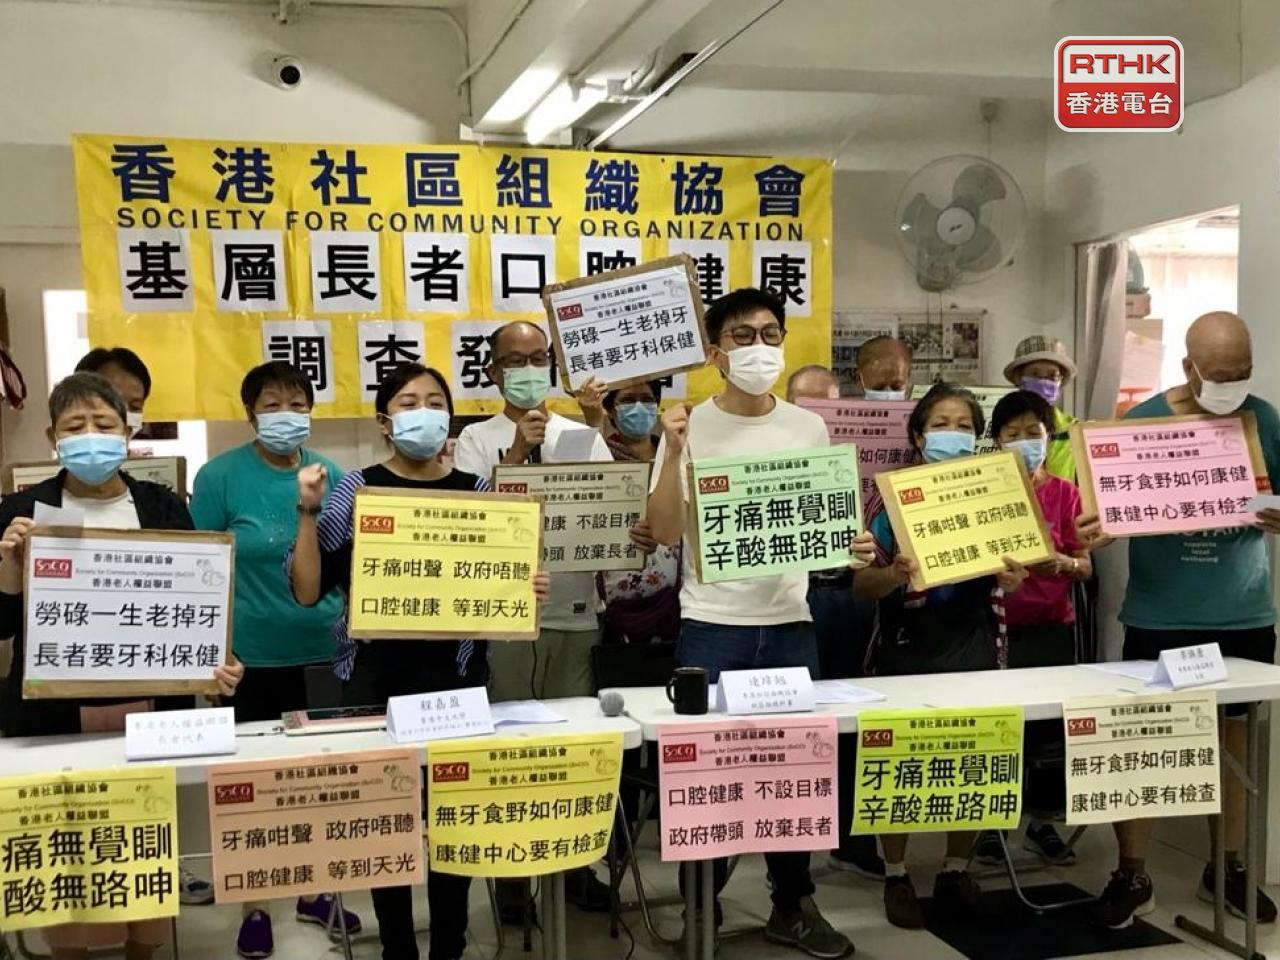 The Society for Community Organisation says many underprivileged elderly can't afford to see a dentist. Photo: RTHK